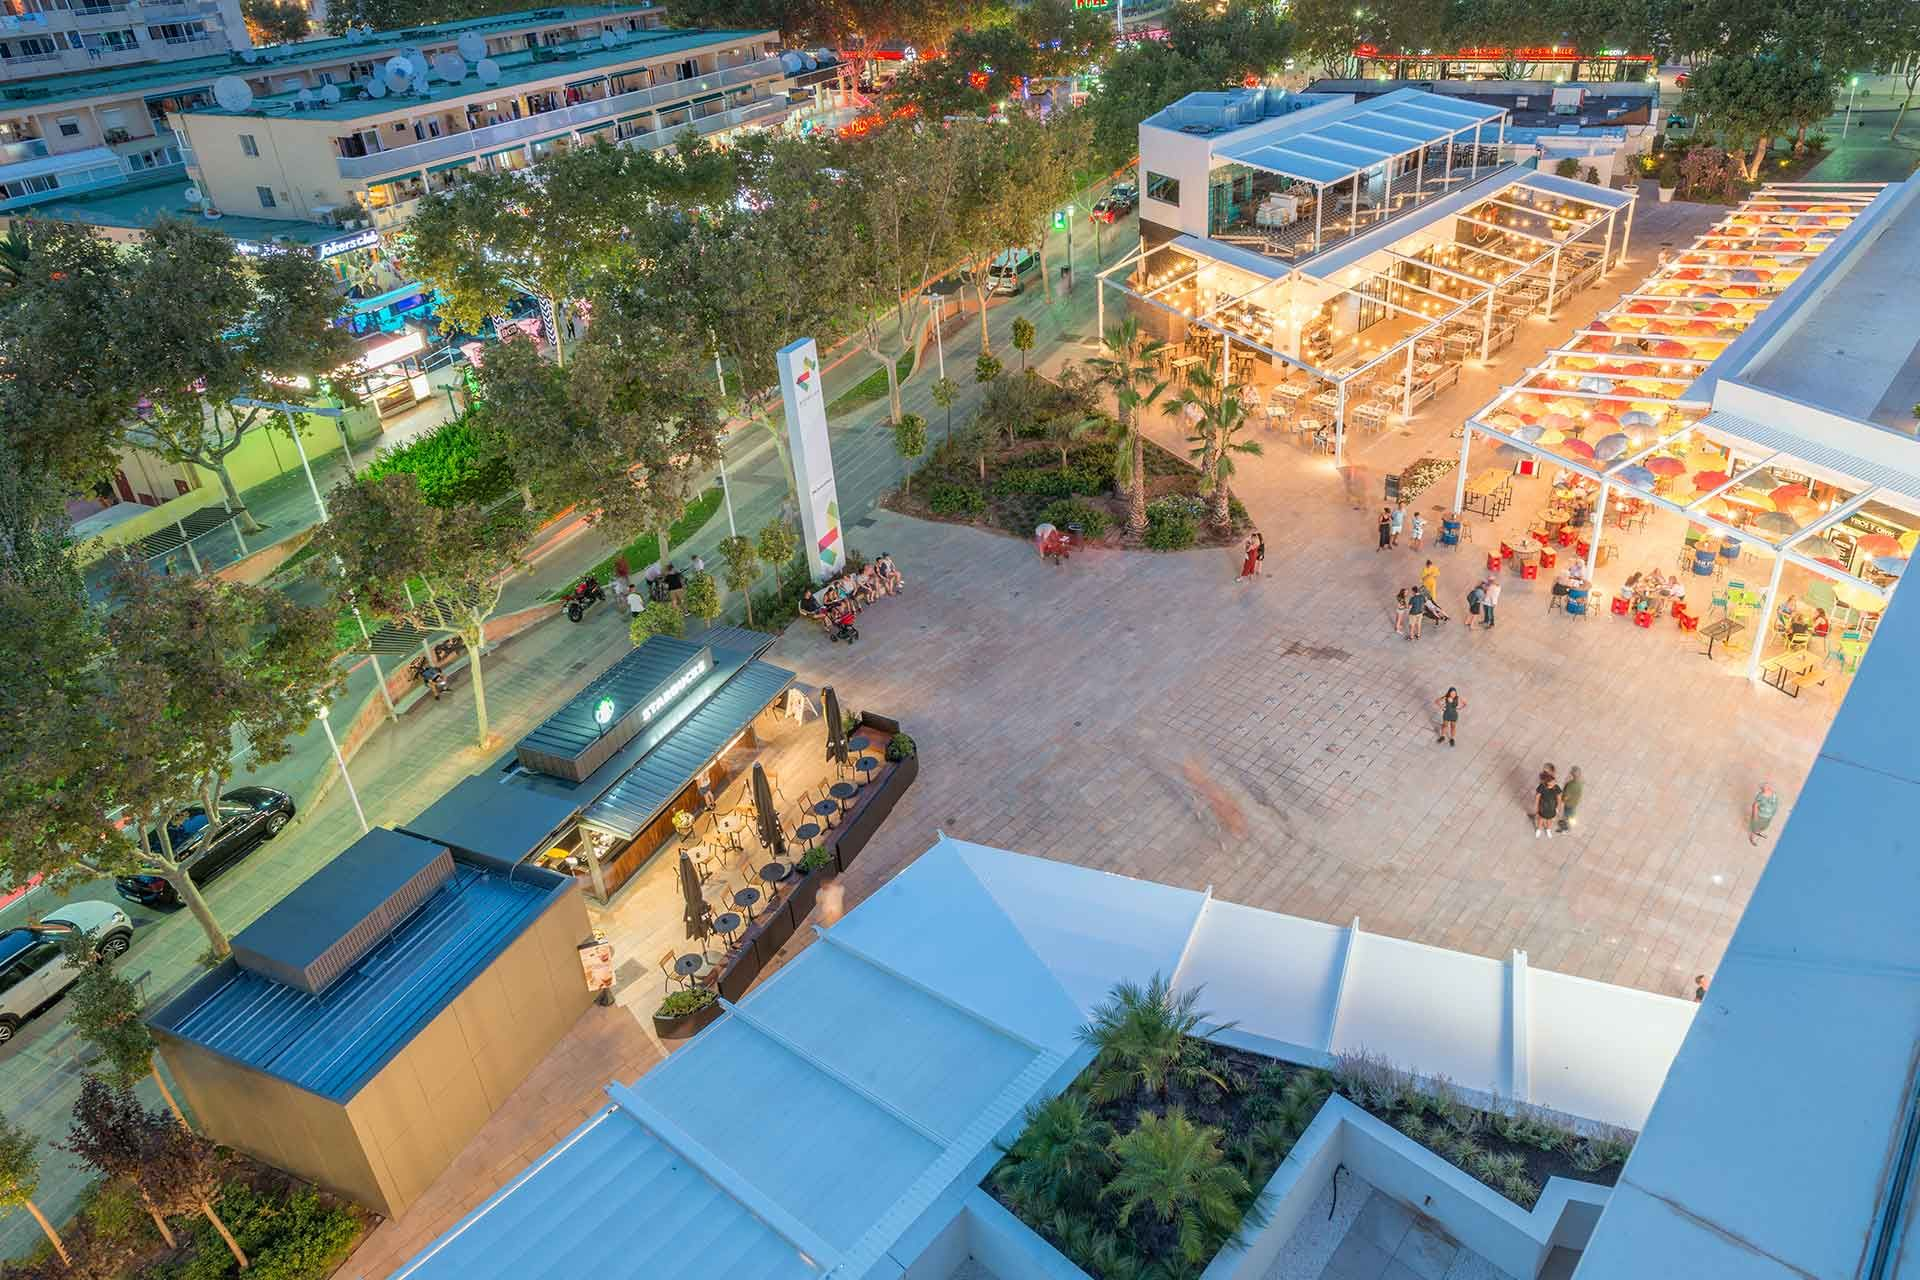 Aerial view of the shopping center pergolas